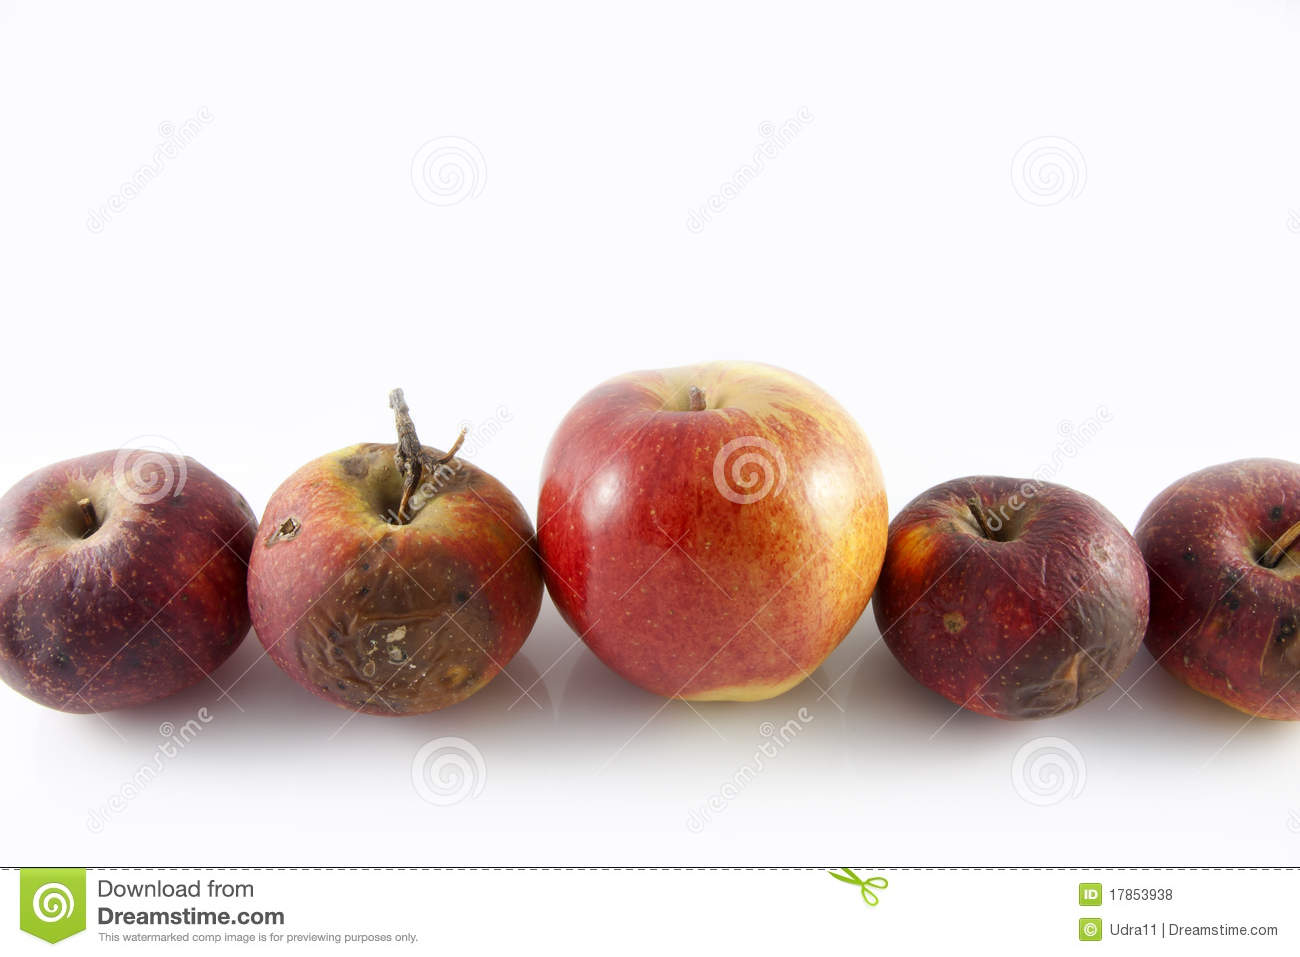 Rotten apples and good